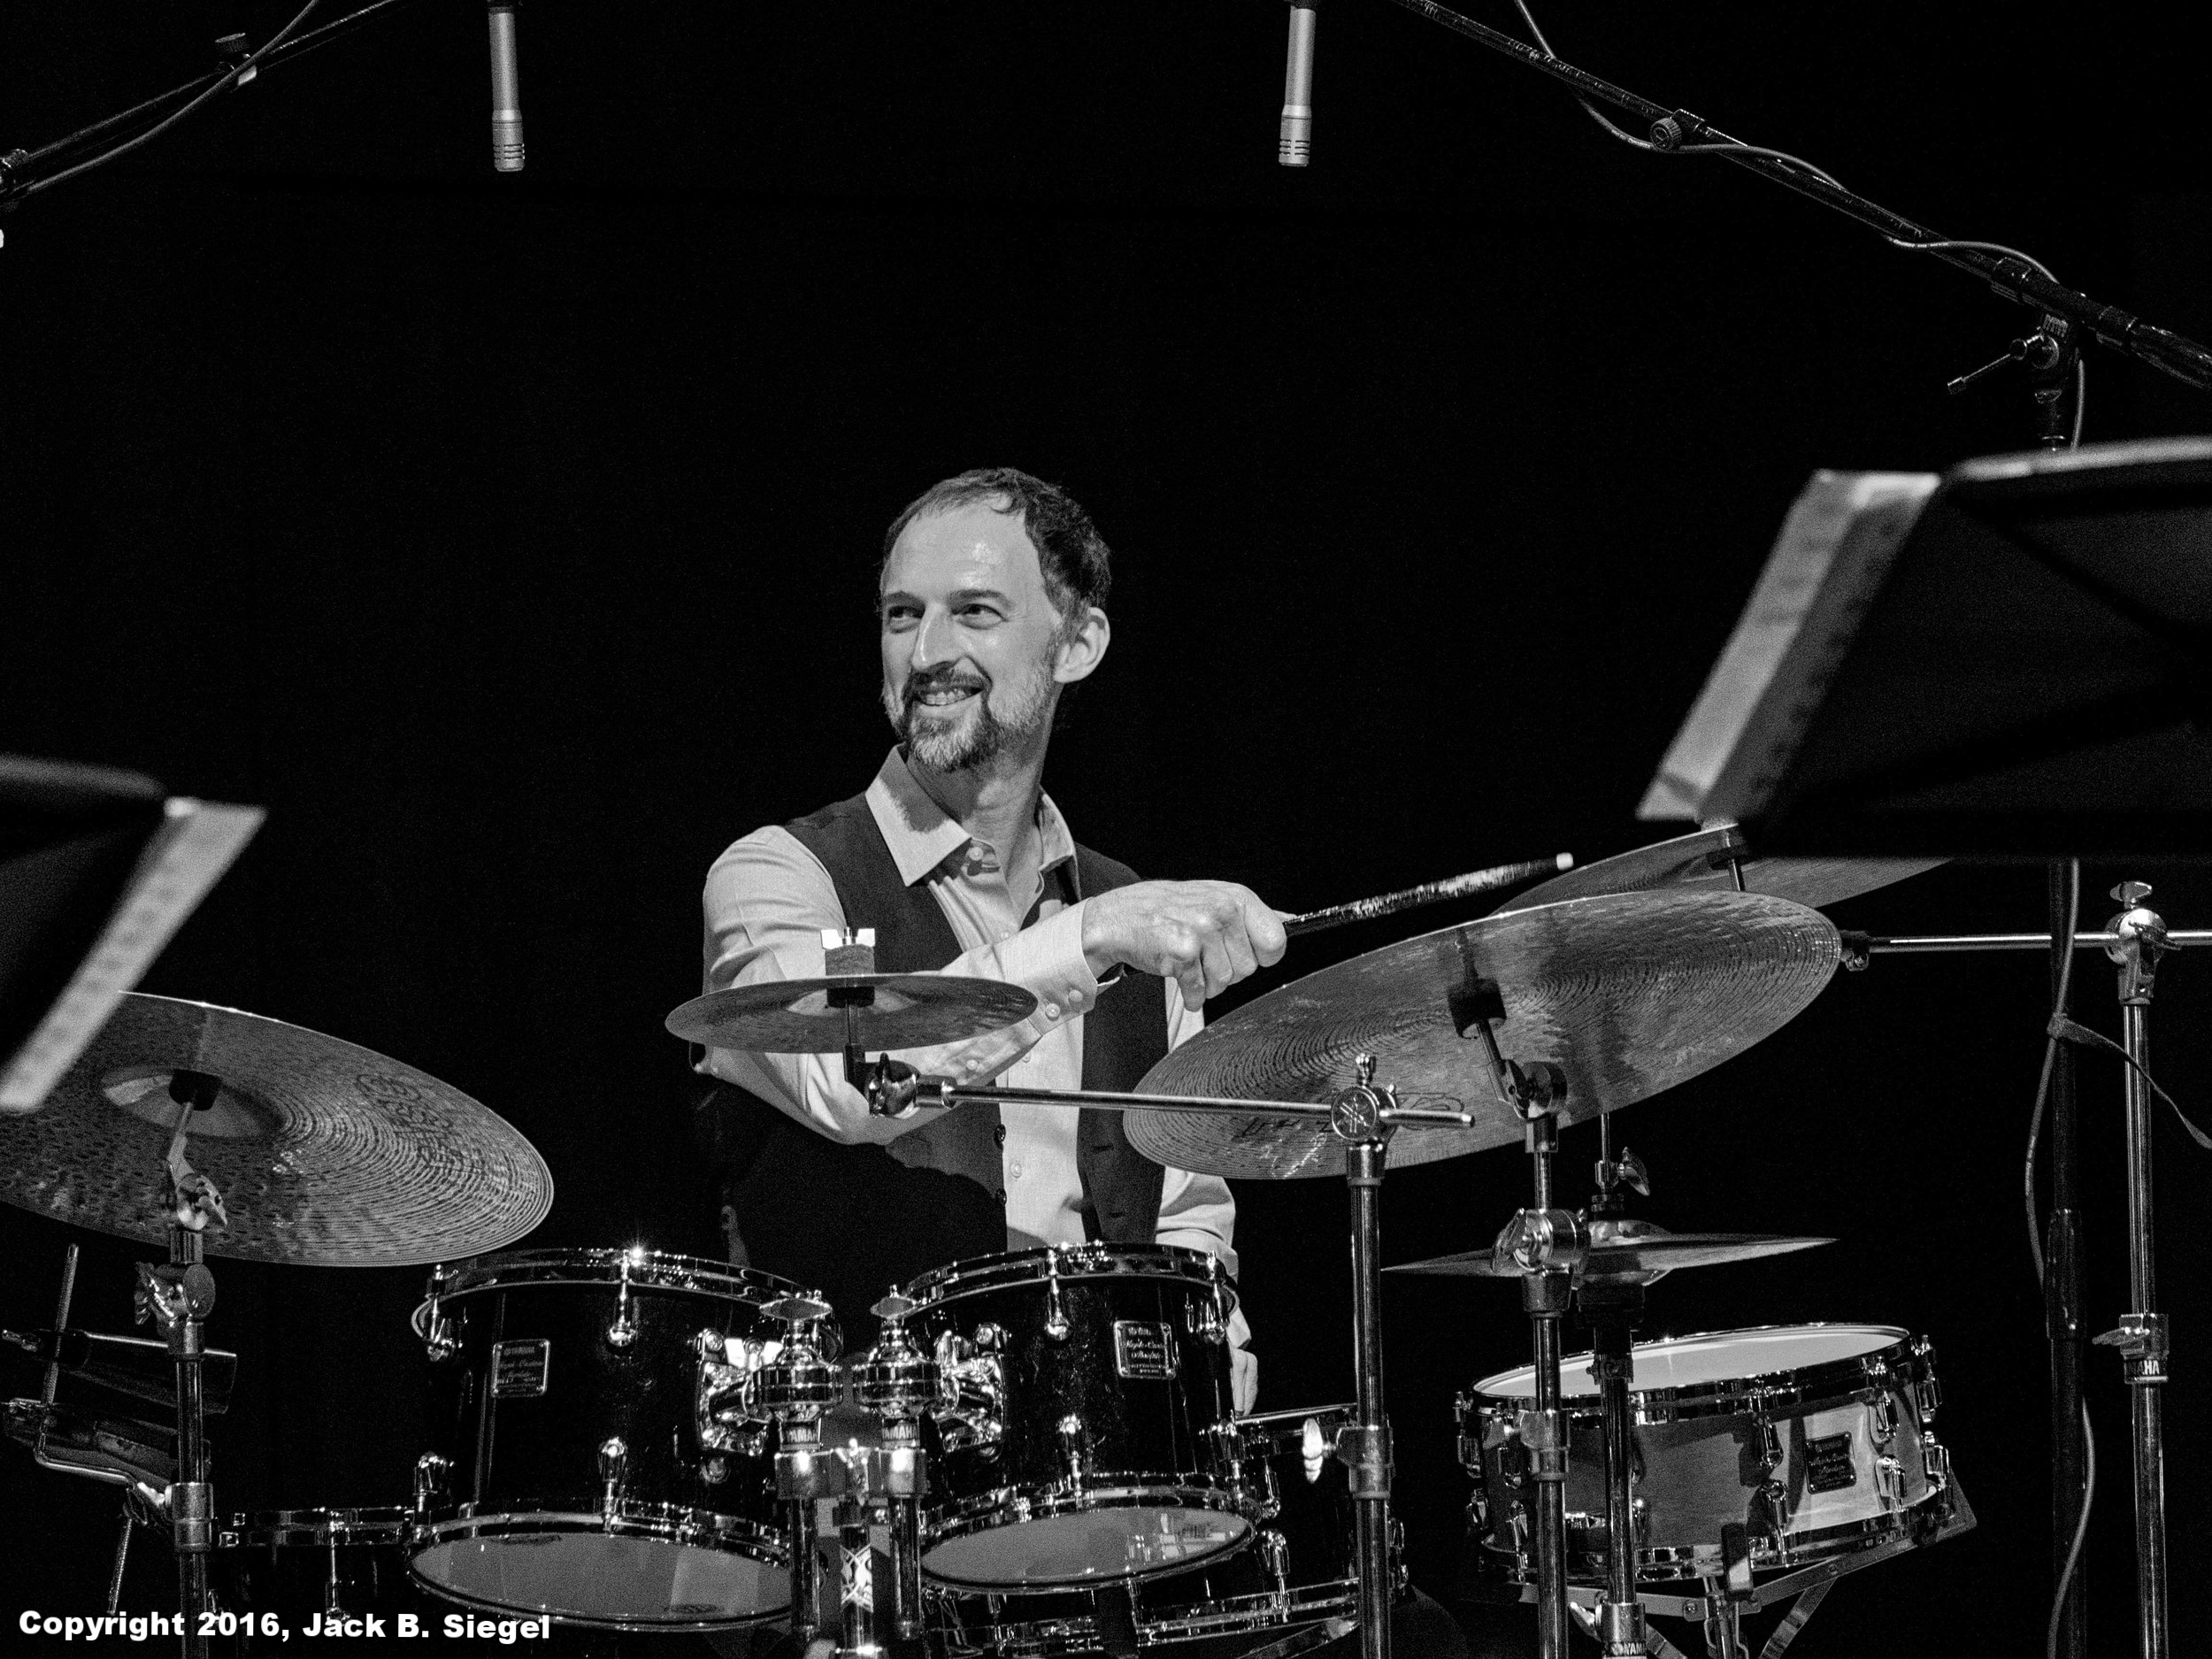 Mark Walker on Drums